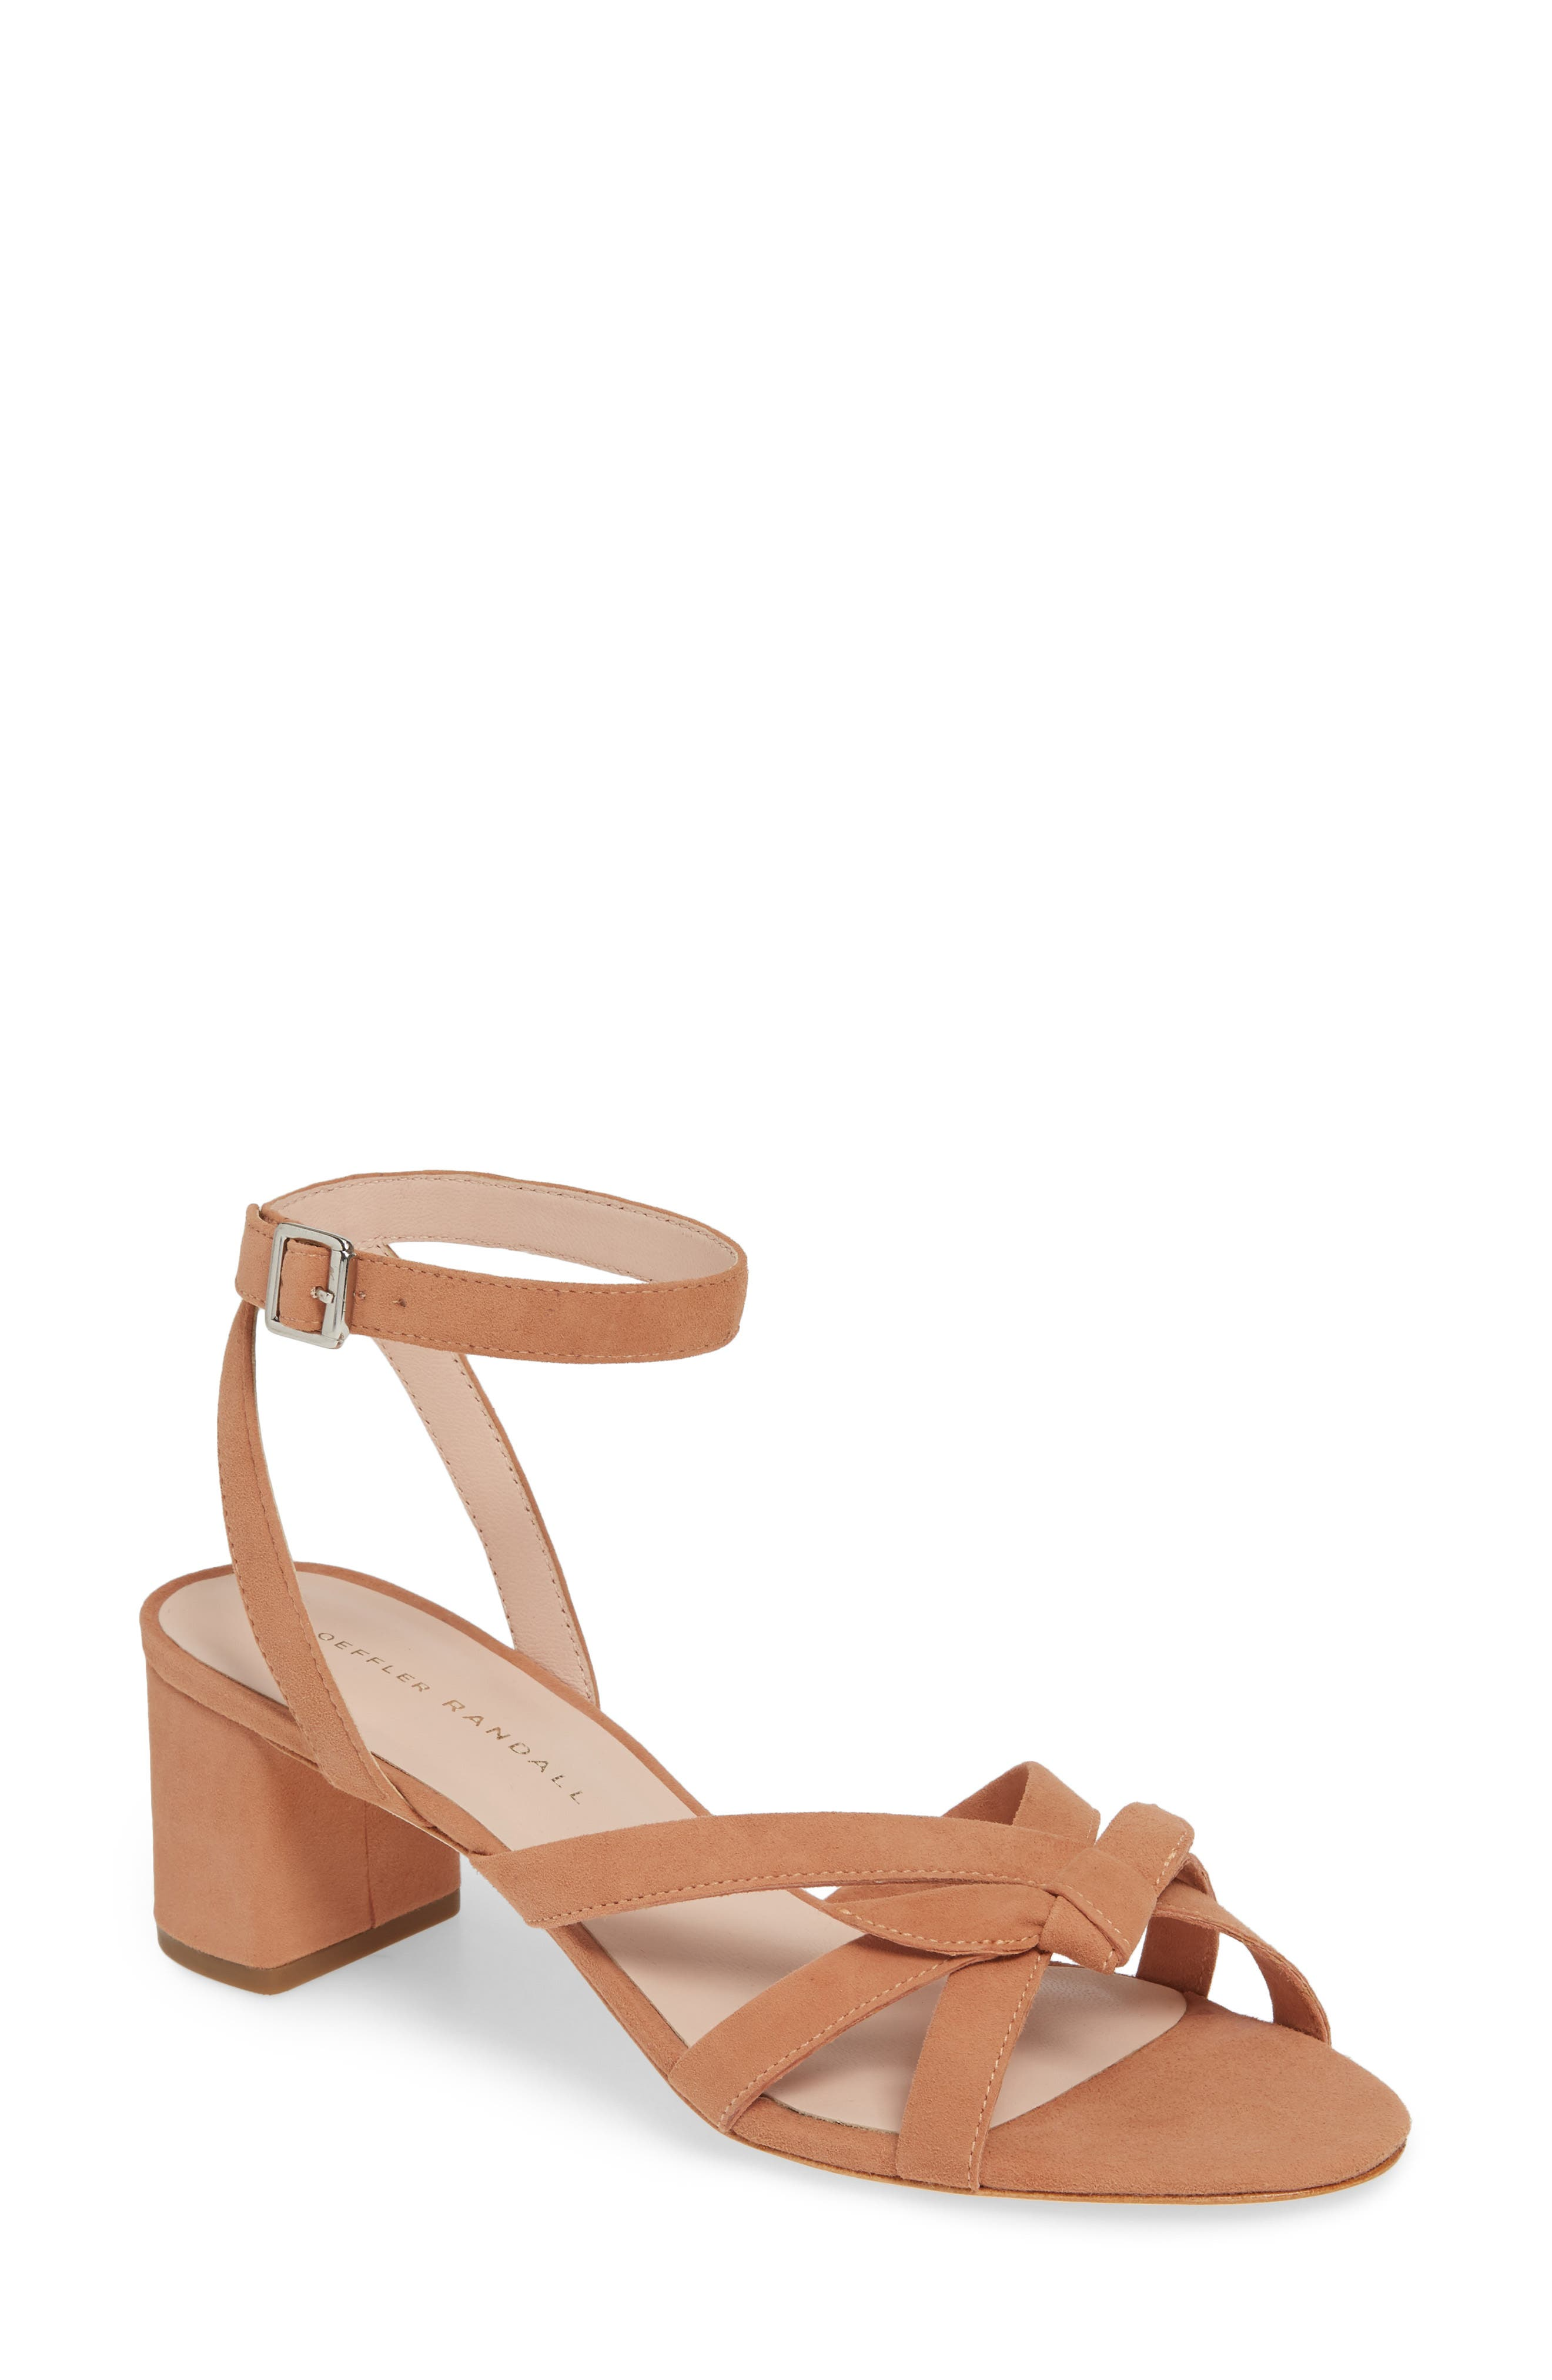 LOEFFLER RANDALL Anny Knotted Sandal, Main, color, COQUILLE